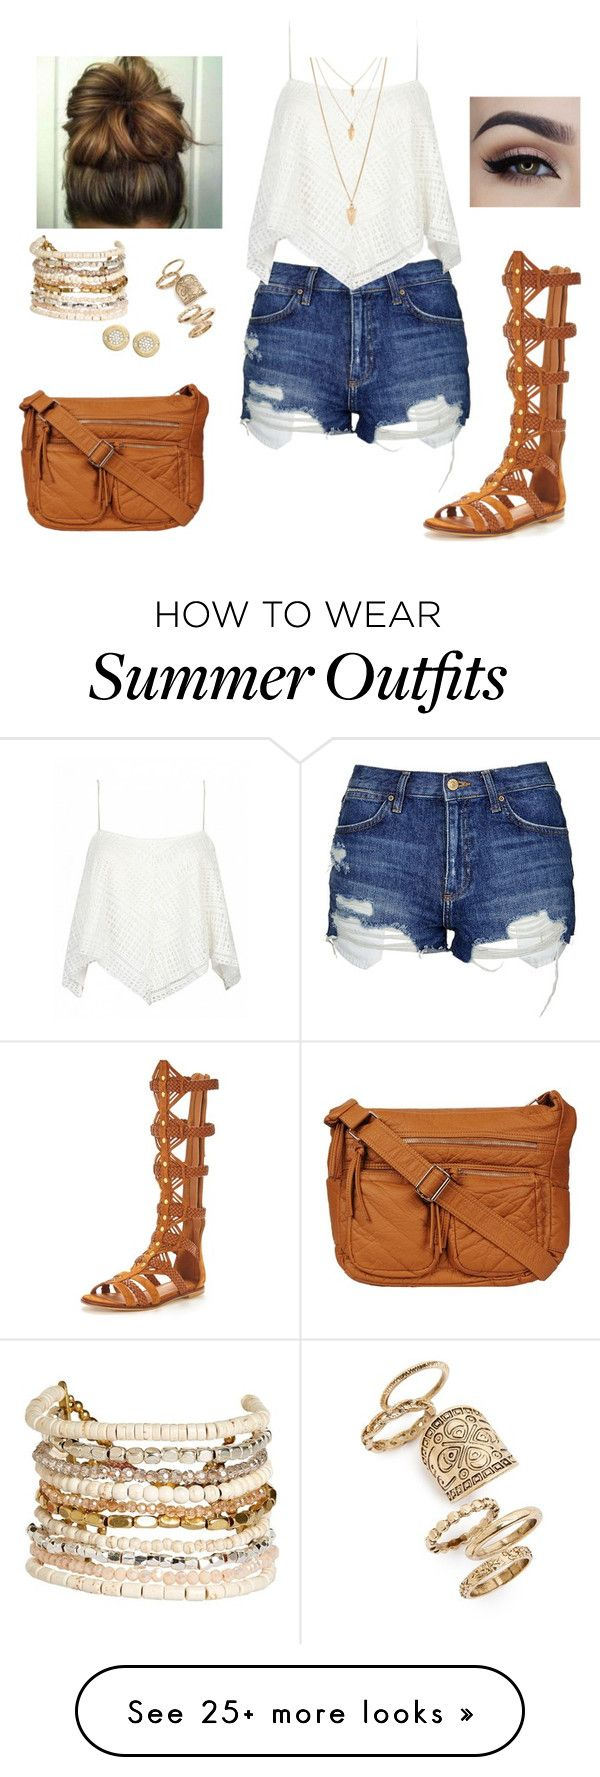 """Summer outfit"" by luxurybarbie on Polyvore featuring Topshop, KG Kurt Geiger, Panacea, Forever 21 and Michael Kors"